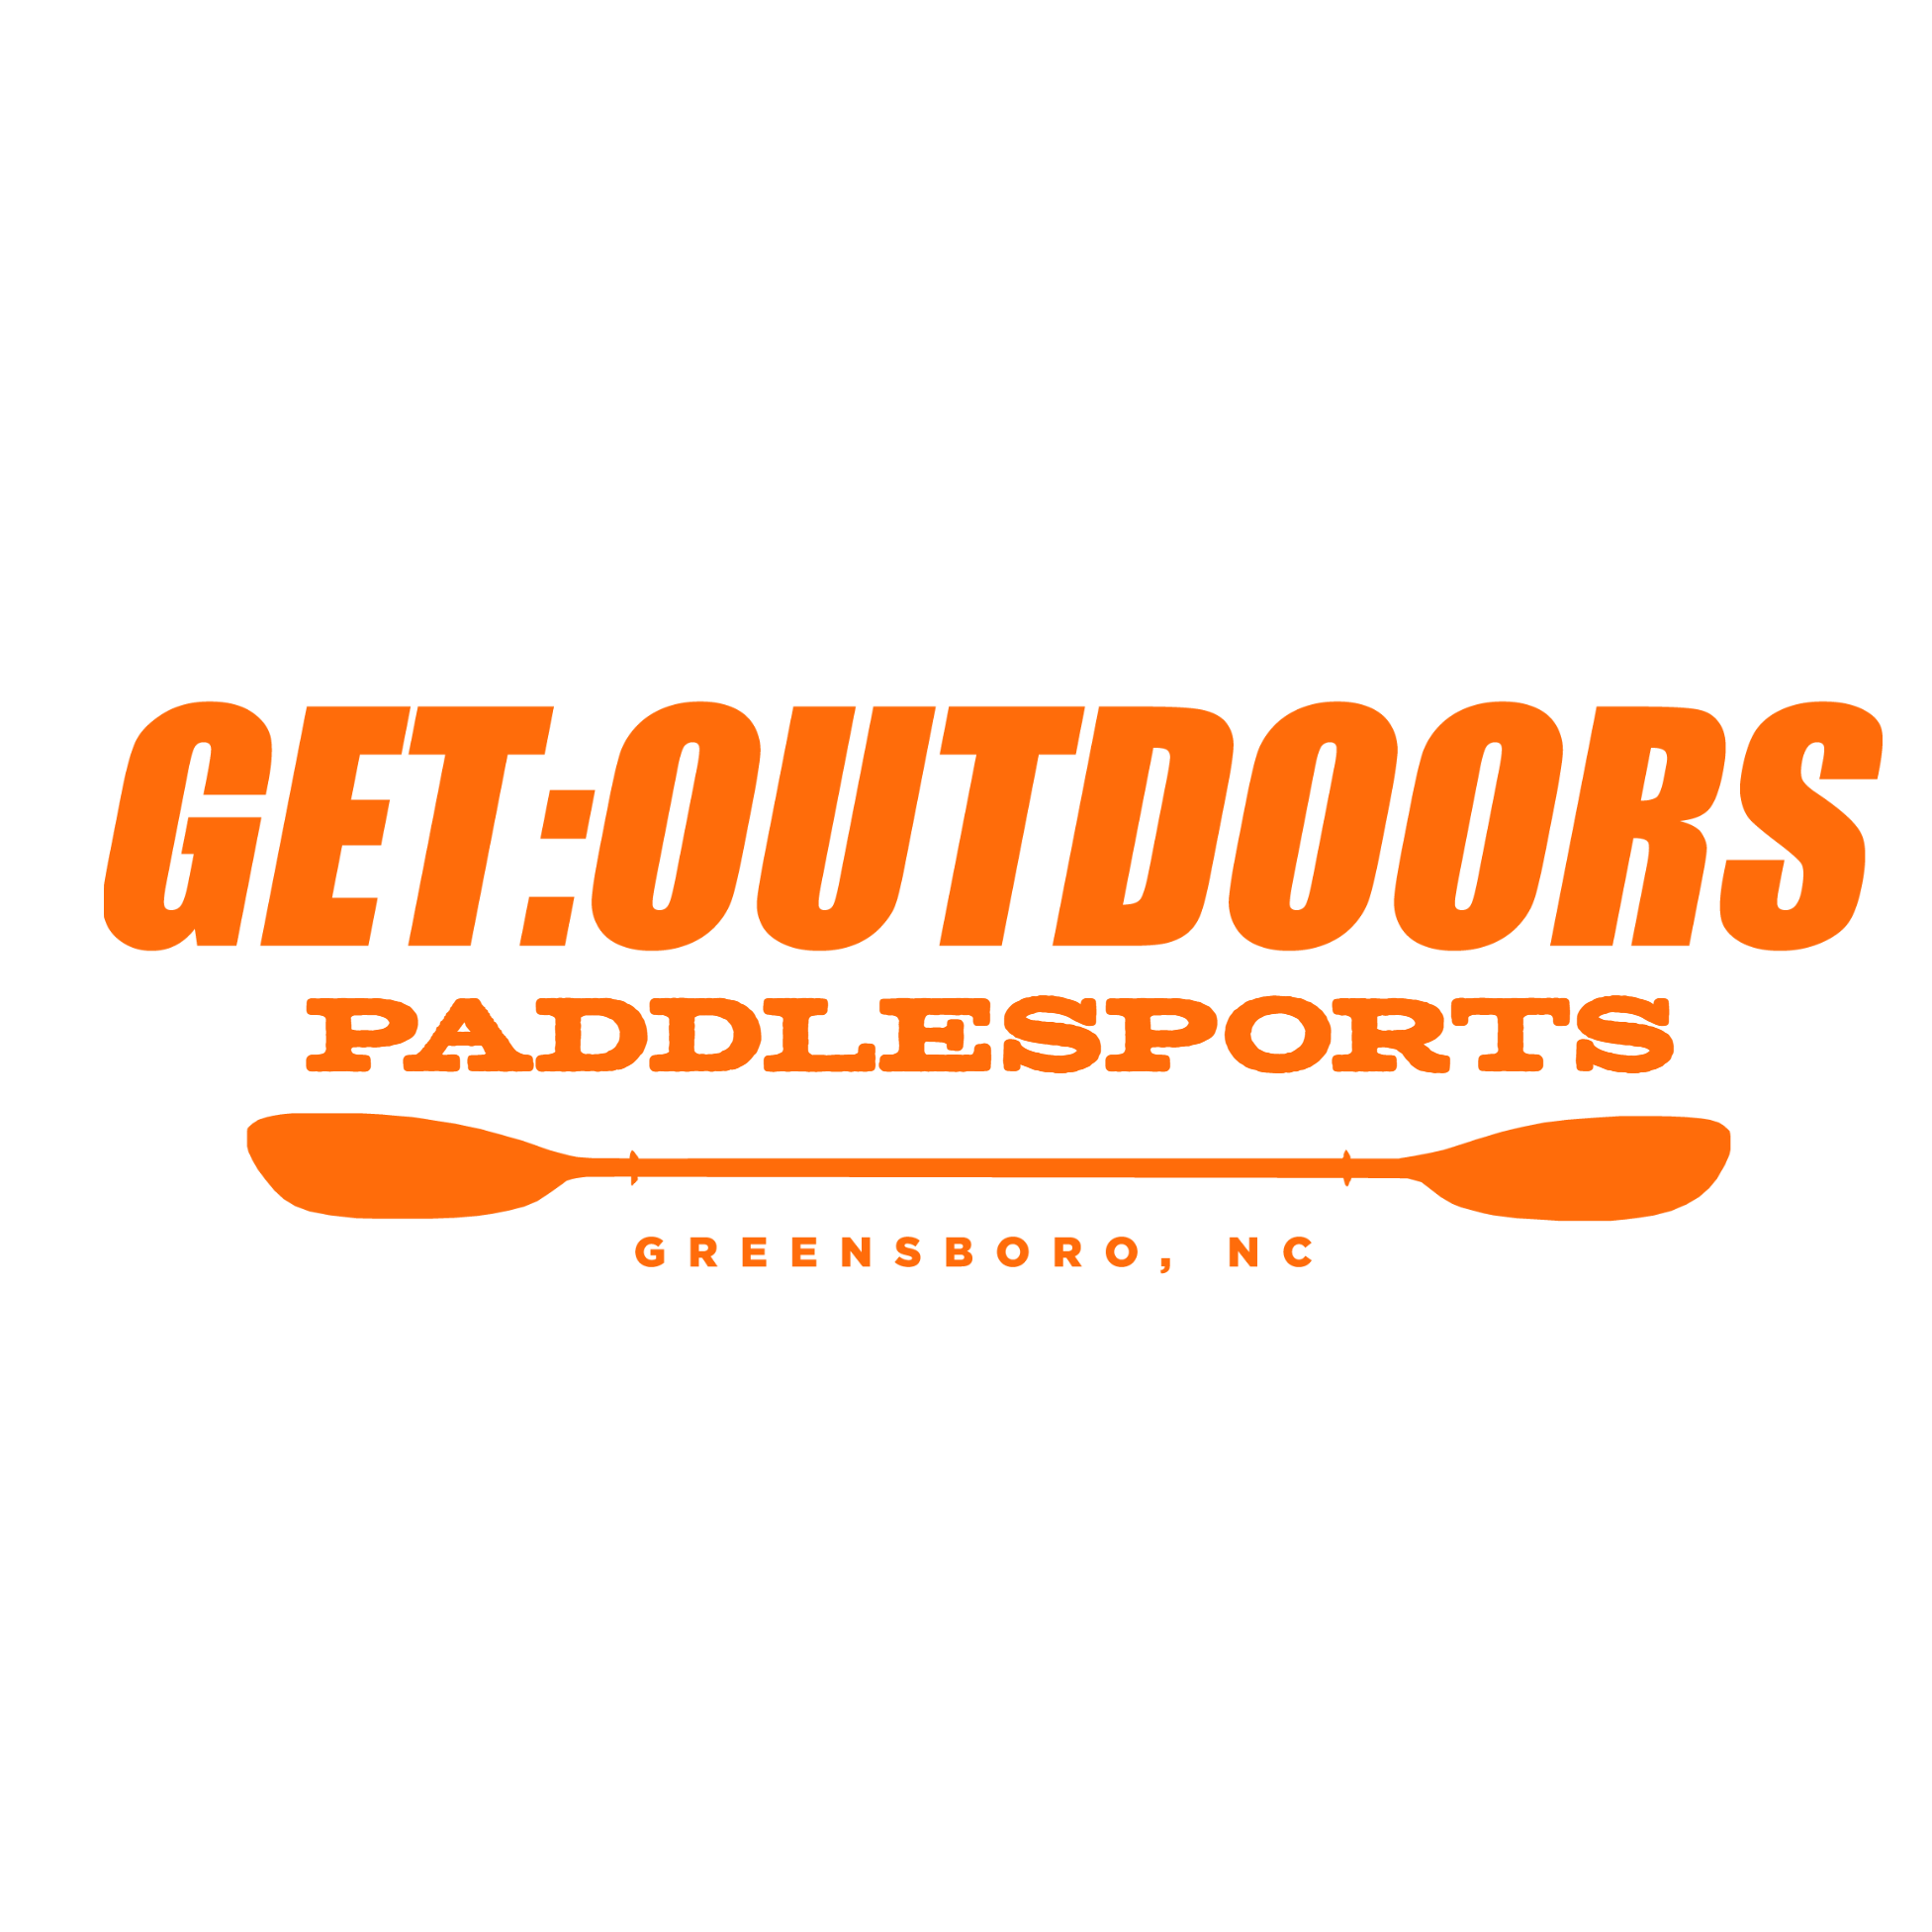 Get:Outdoors Paddlesports